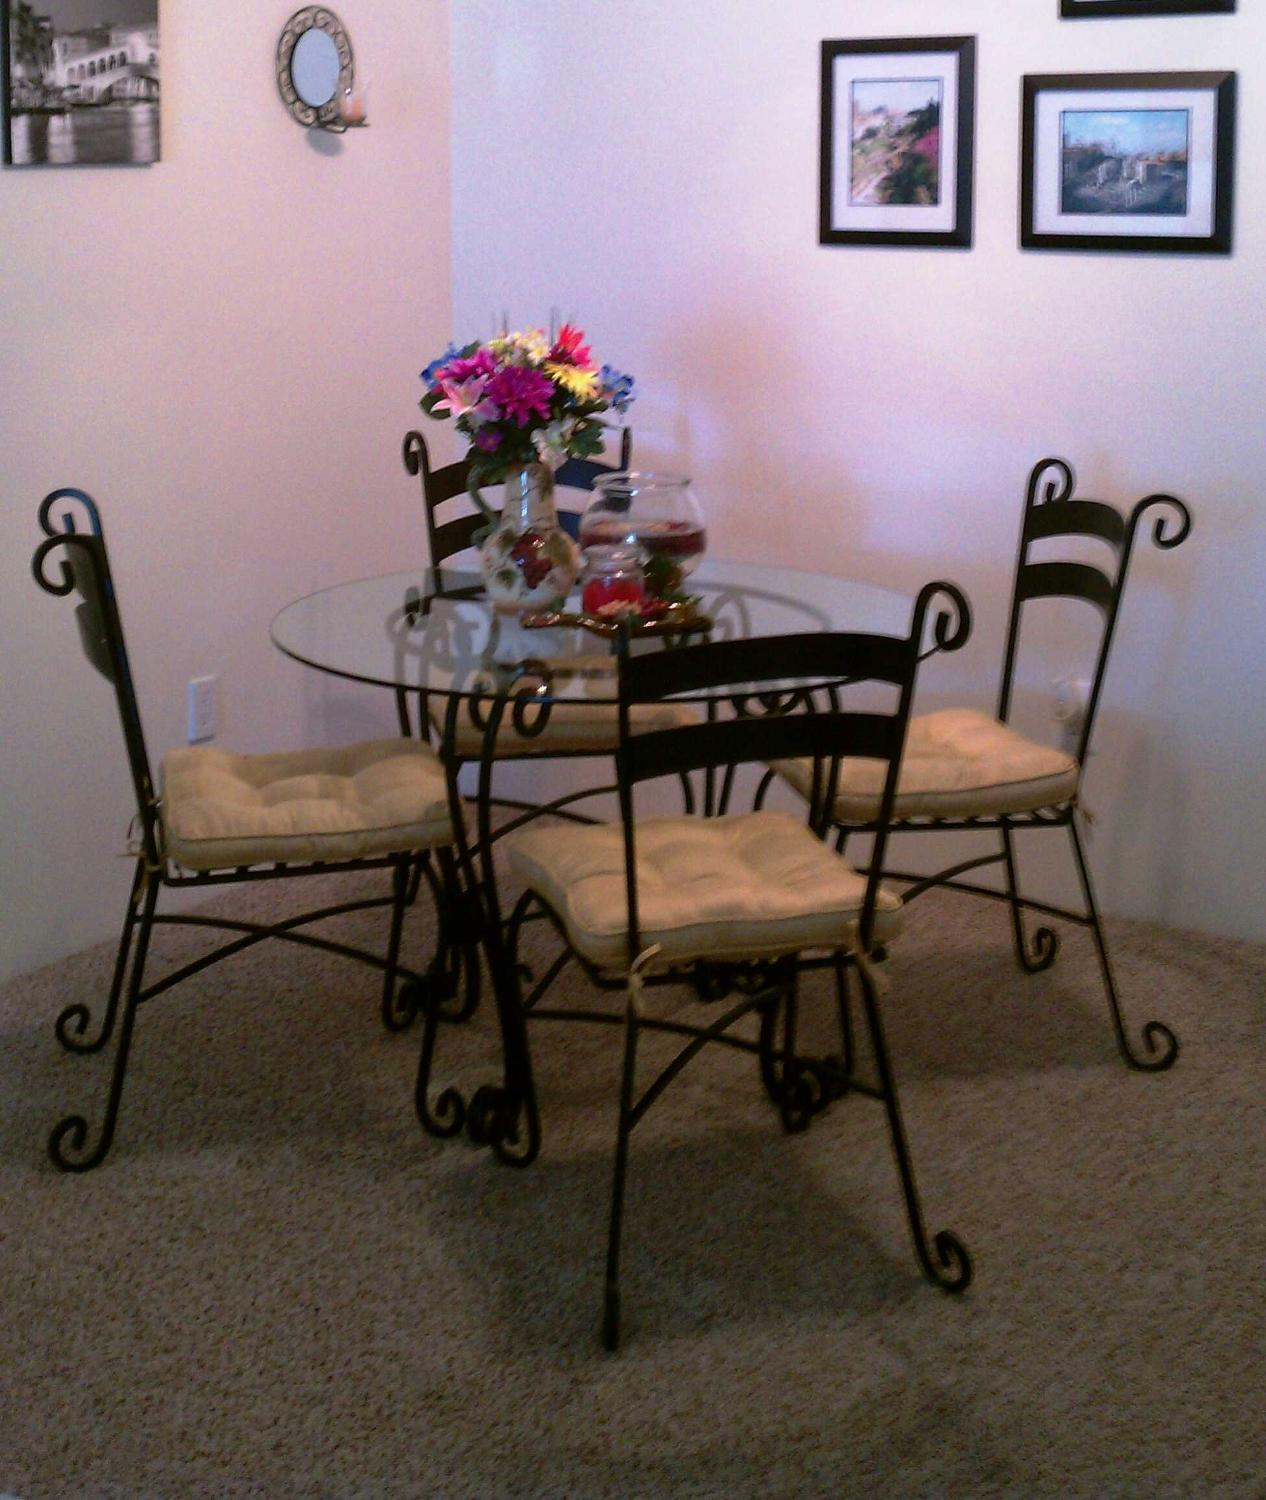 Best Pier One Glass And Wrought Iron Dining Set For Sale In Denver Colorado For 2021